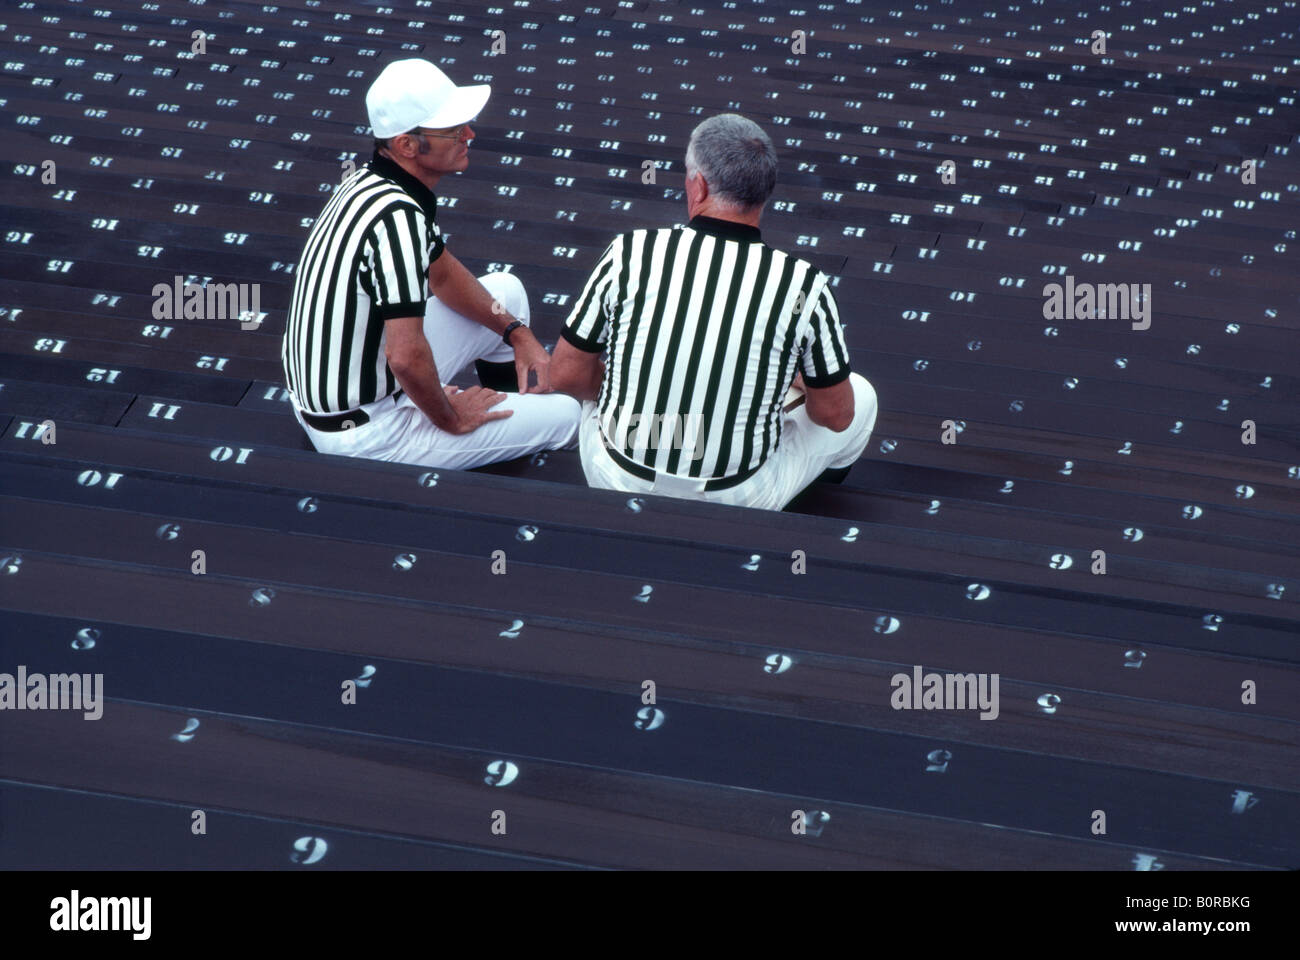 Referees at 'Dartmouth College' in 'Hanover NH'. USA - Stock Image